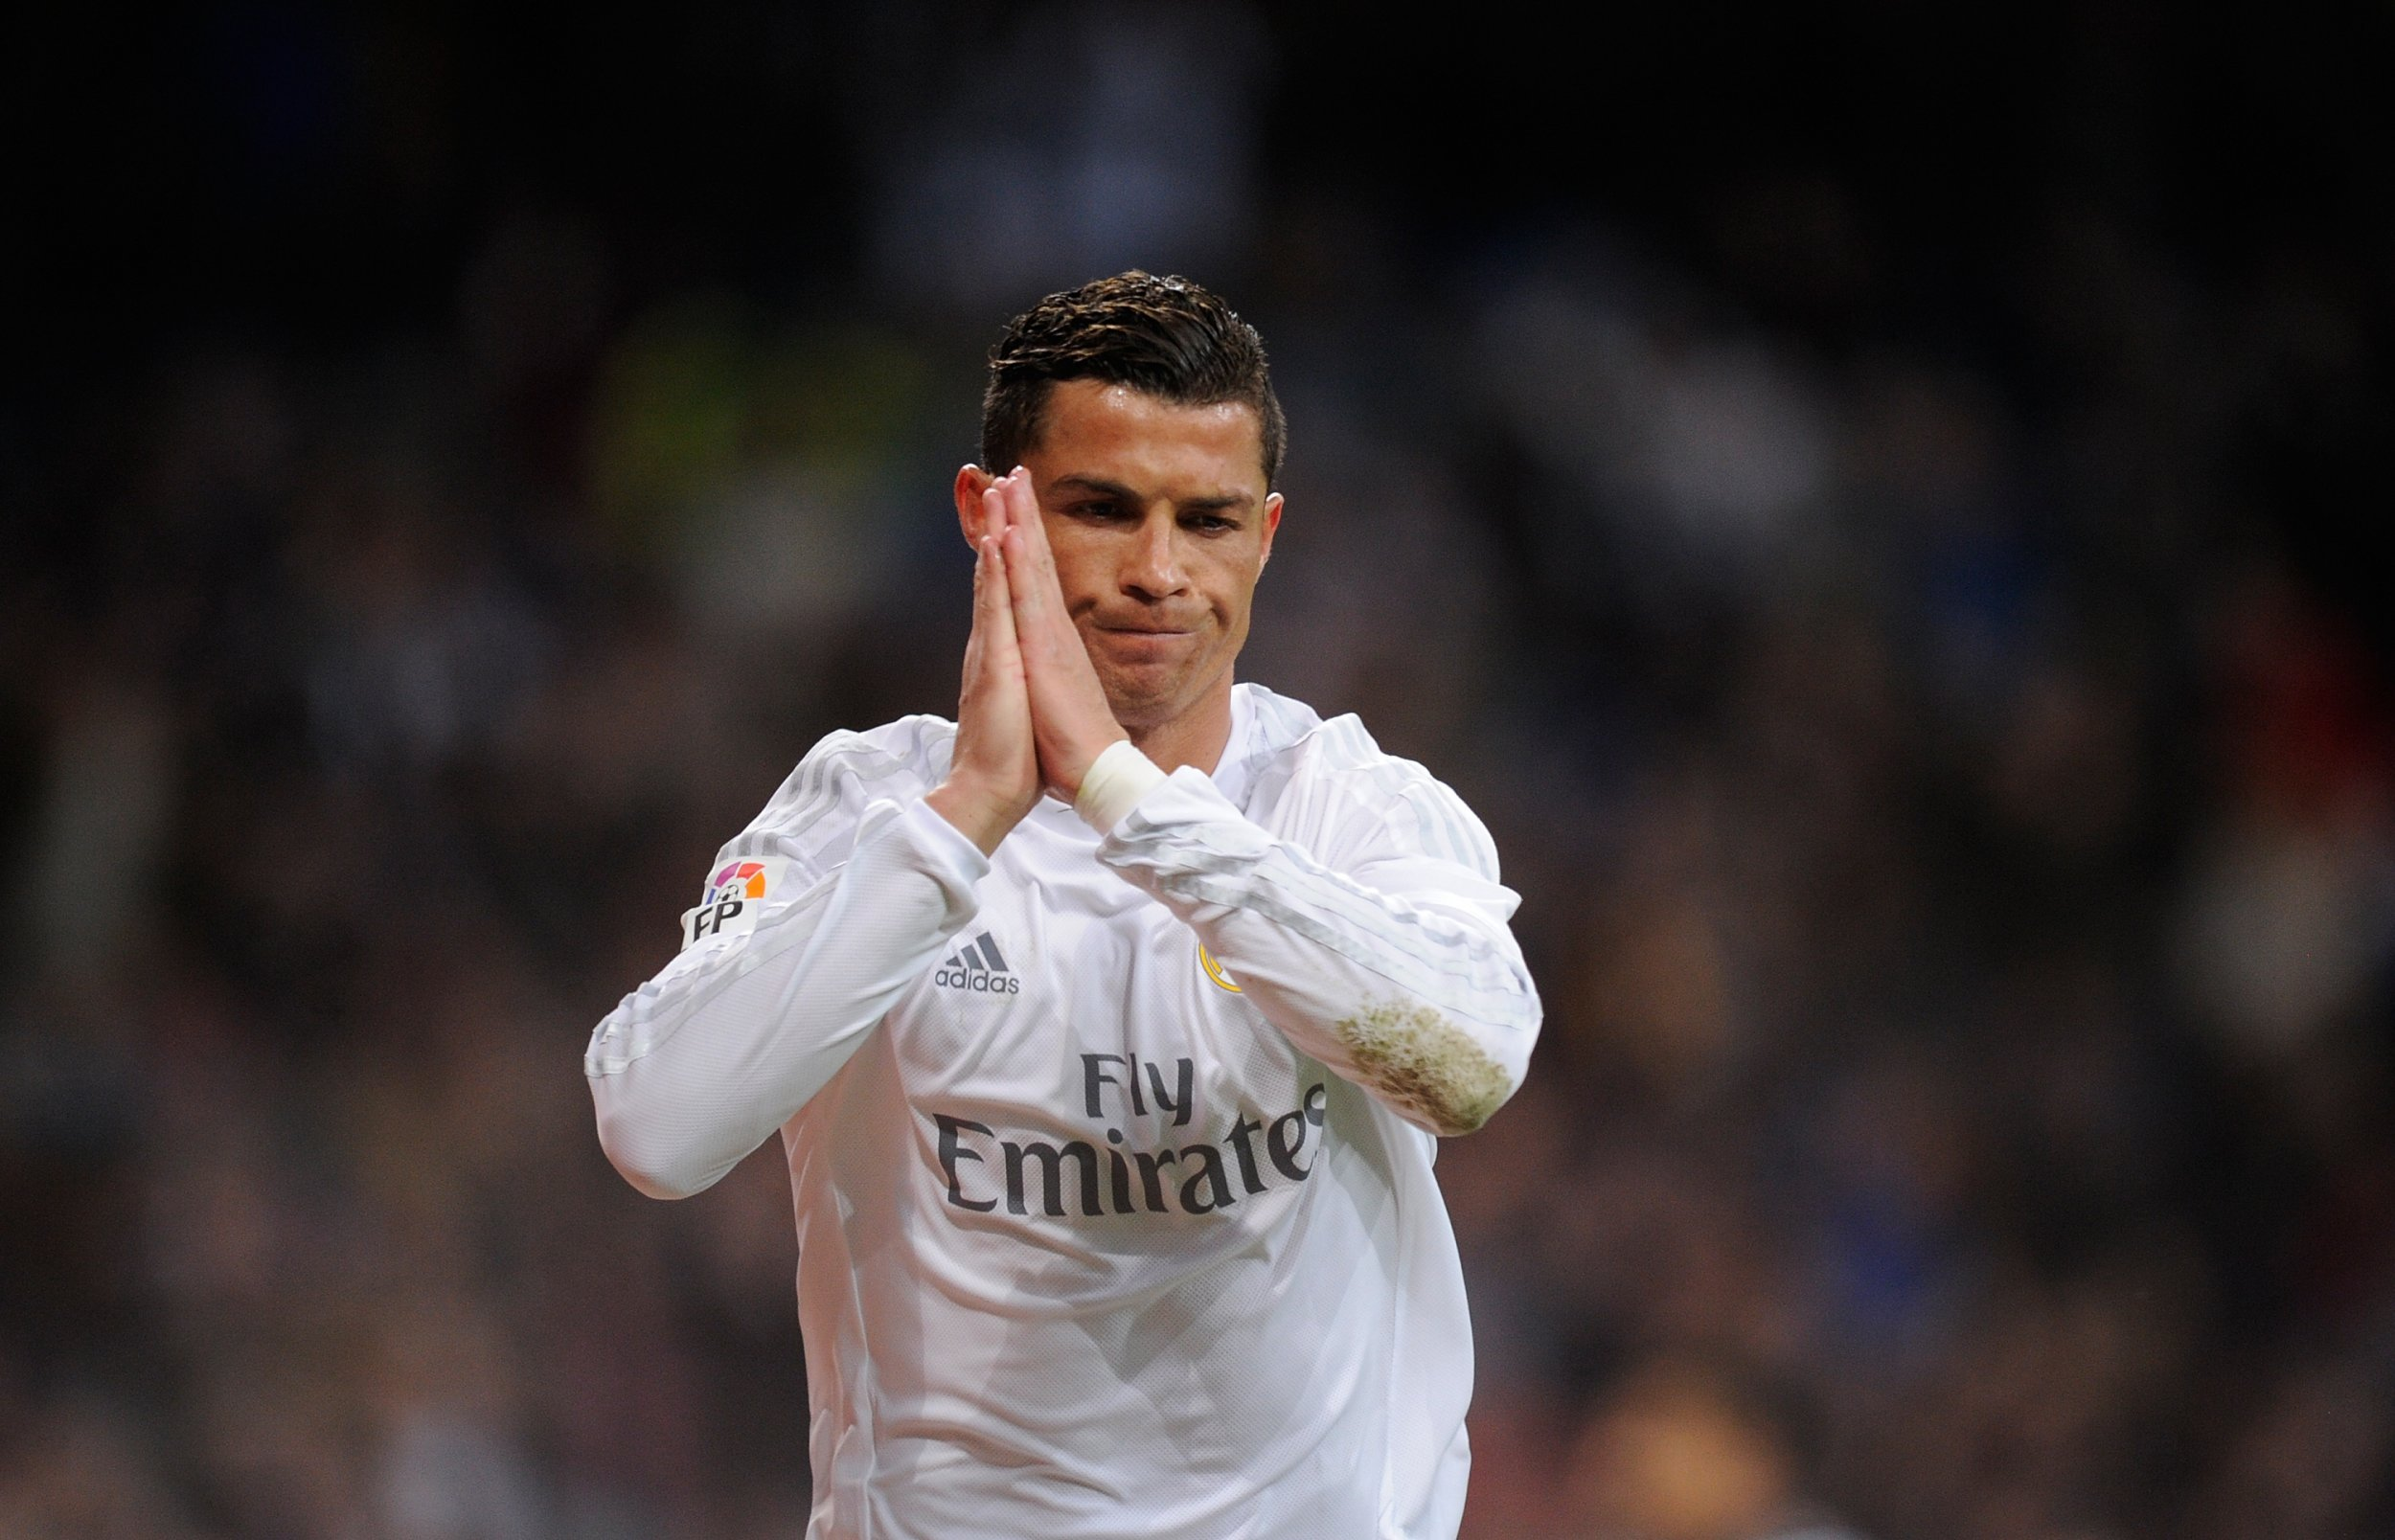 Cristiano Ronaldo has been attracting the interest of Paris Saint-Germain, according to reports.